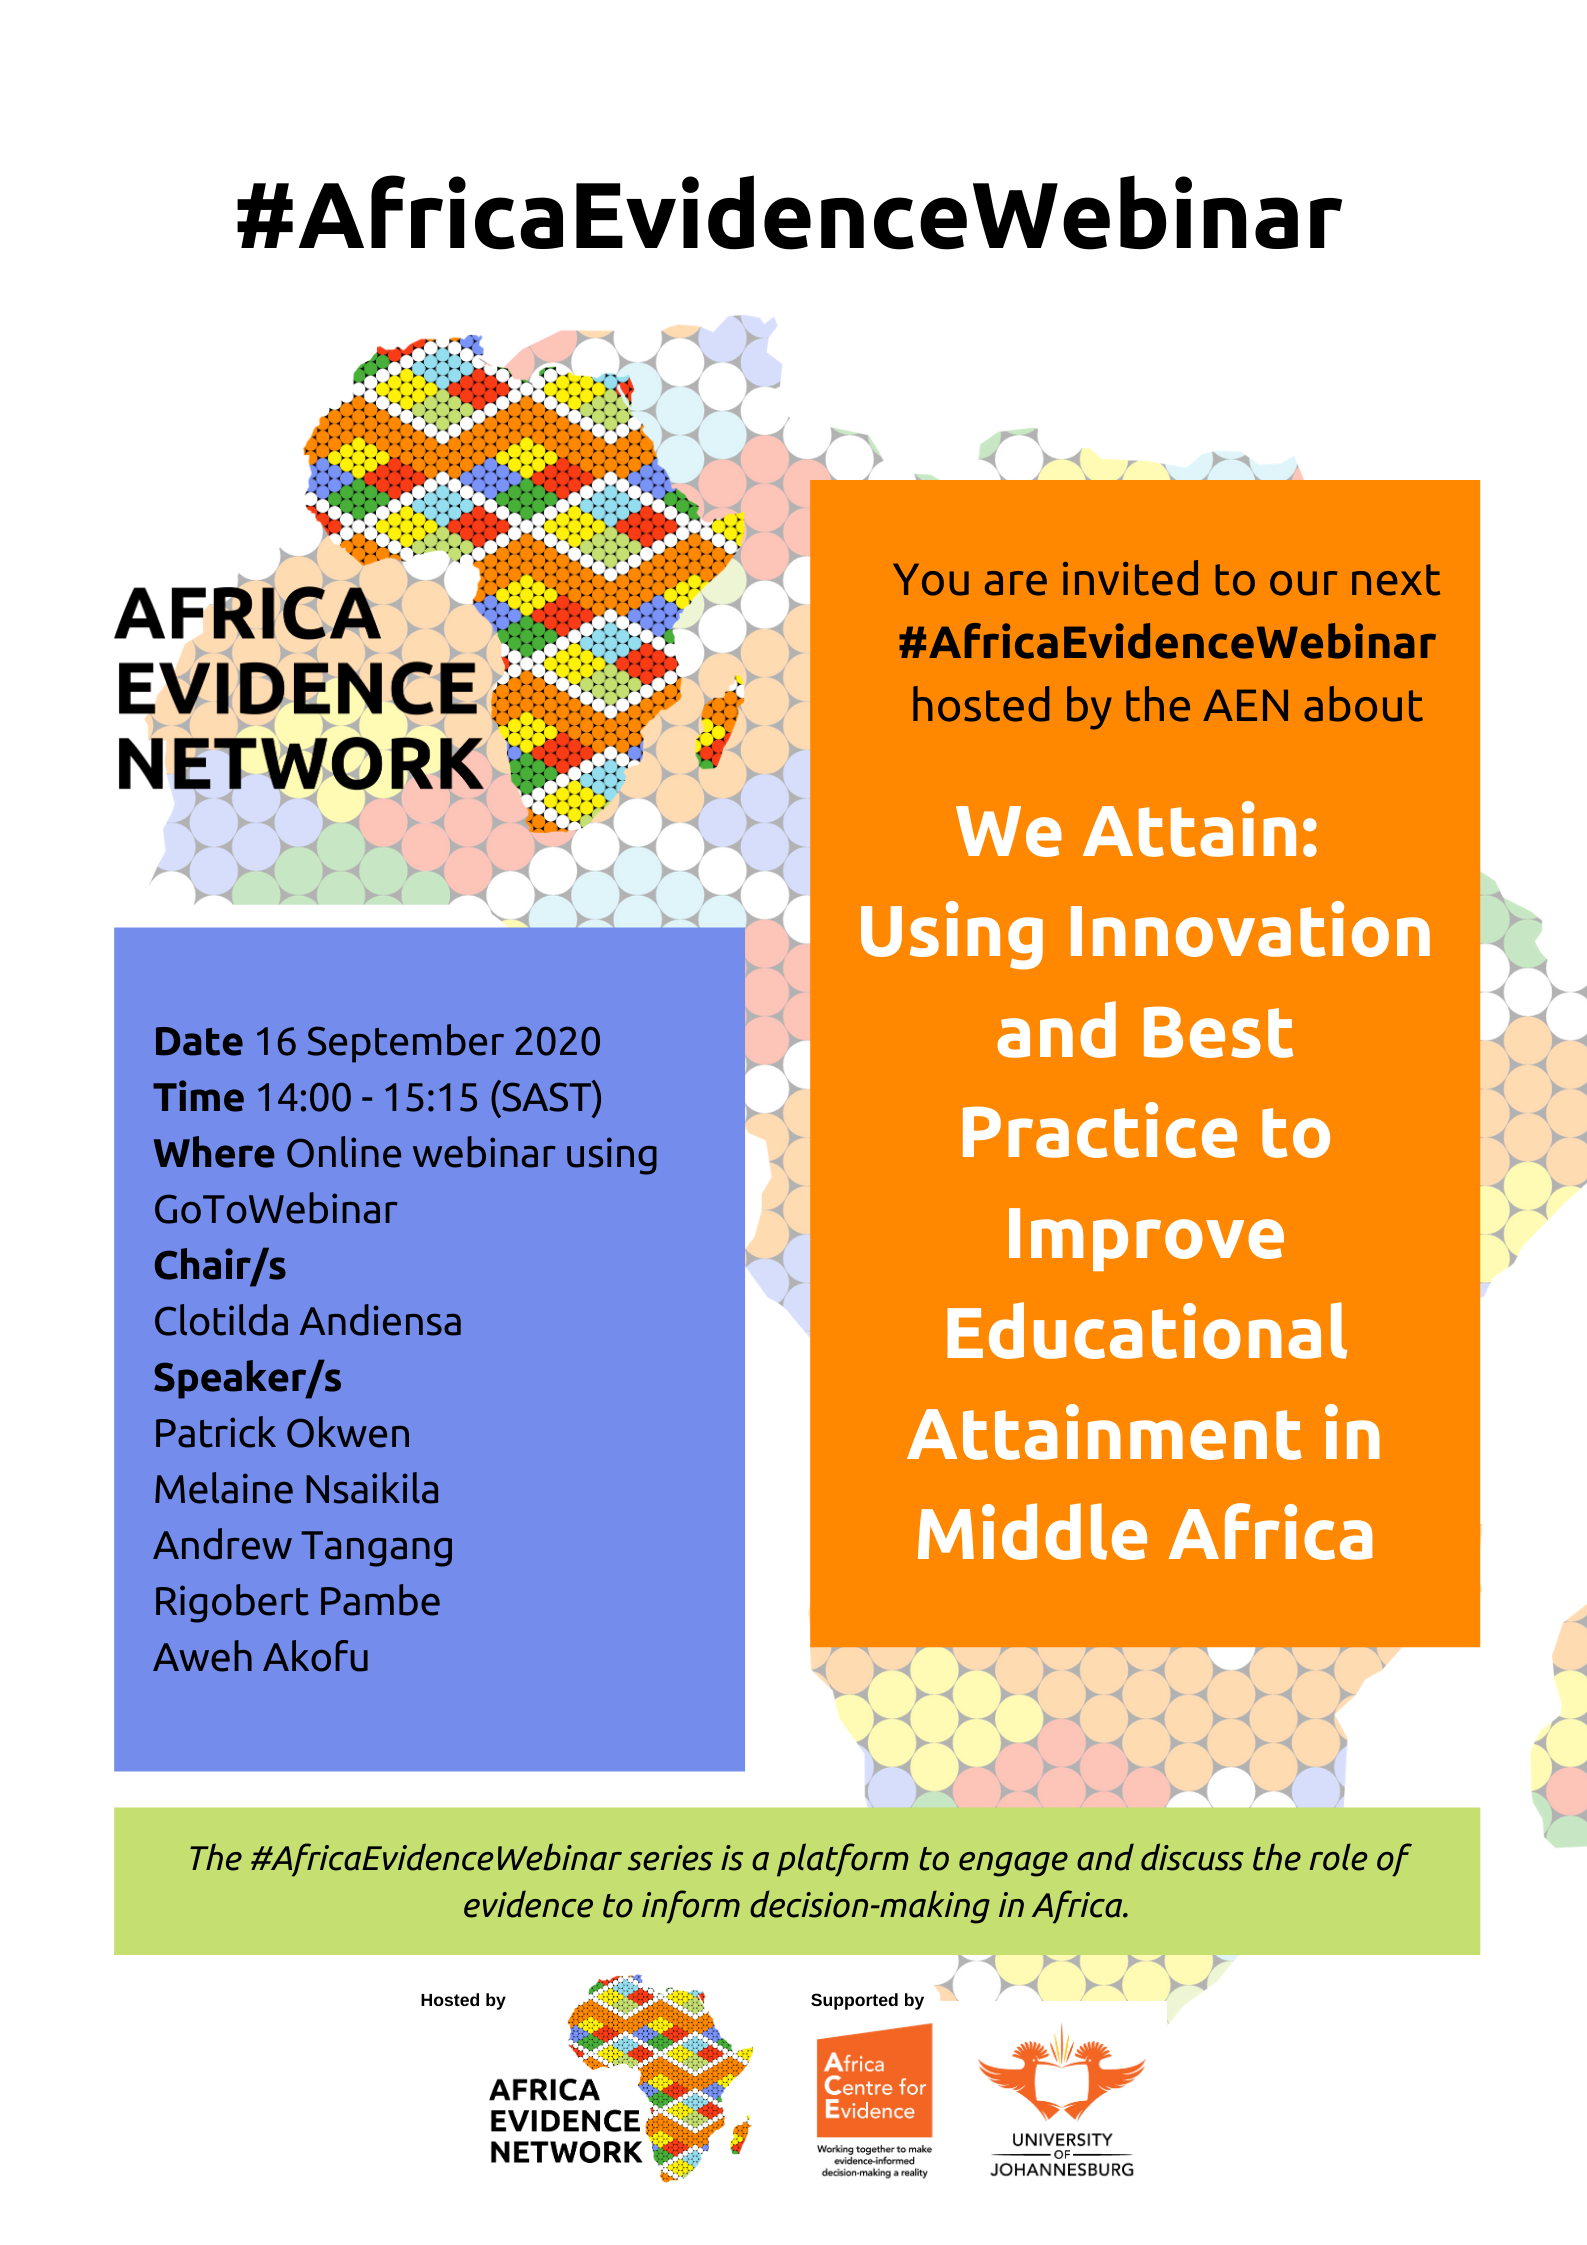 #AfricaEvidenceWebinar | We attain: using innovation and best practice to improve educational attainment in Middle Africa